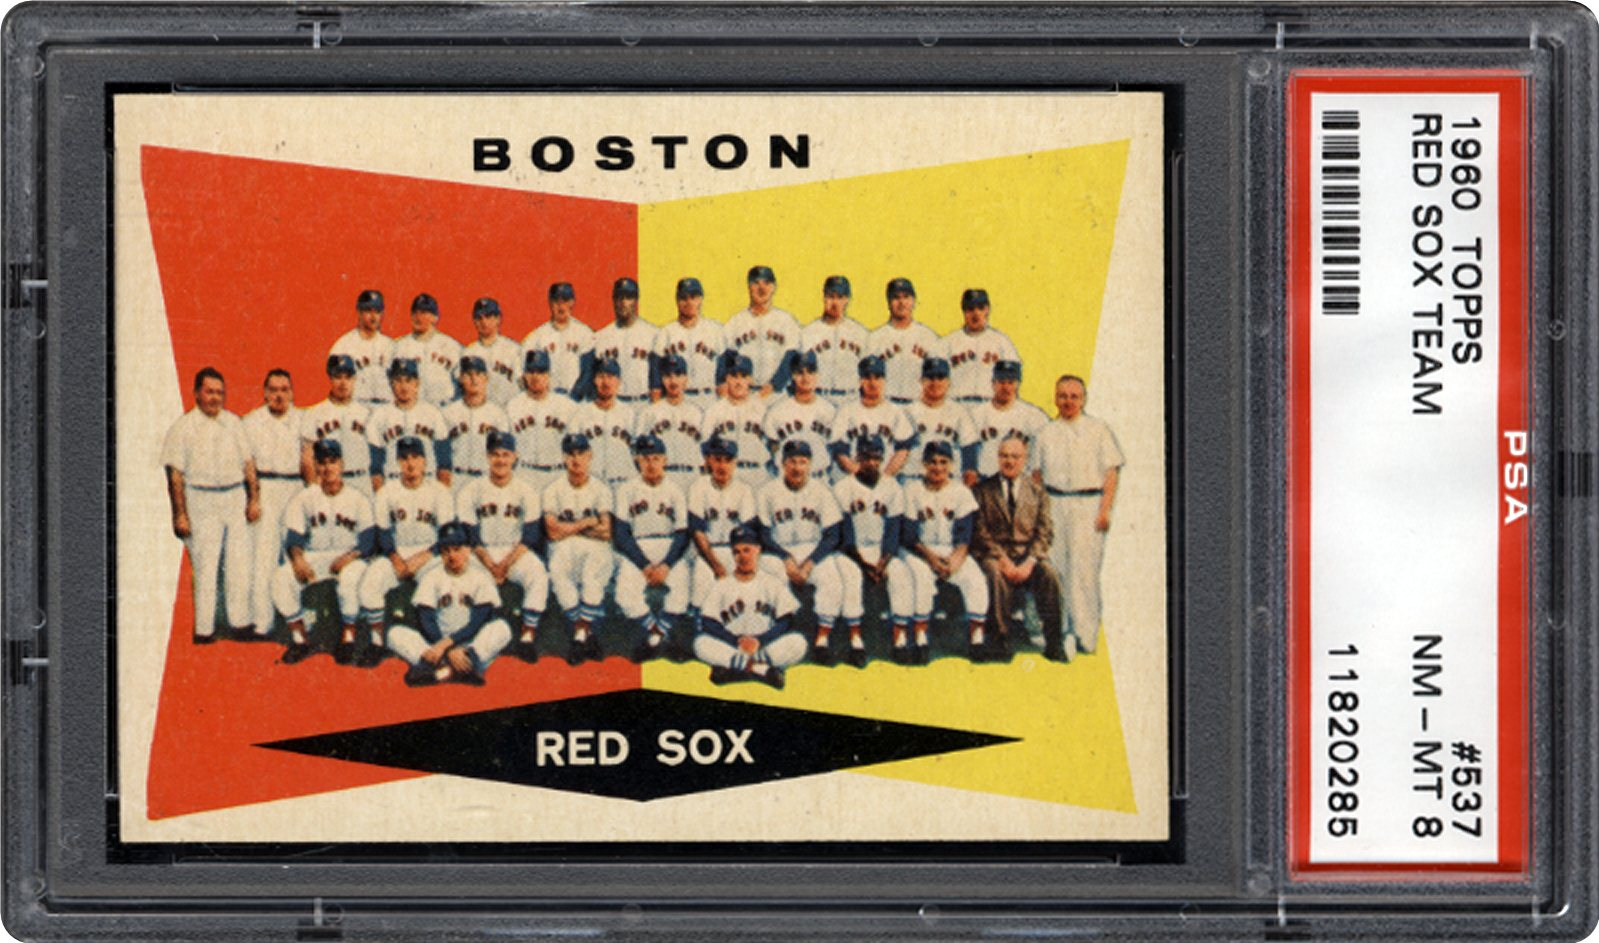 red sox history essay Boston red sox team history : nickname: the boston red sox would benefit by holding the lead for the al pennant with a 75-51 record.